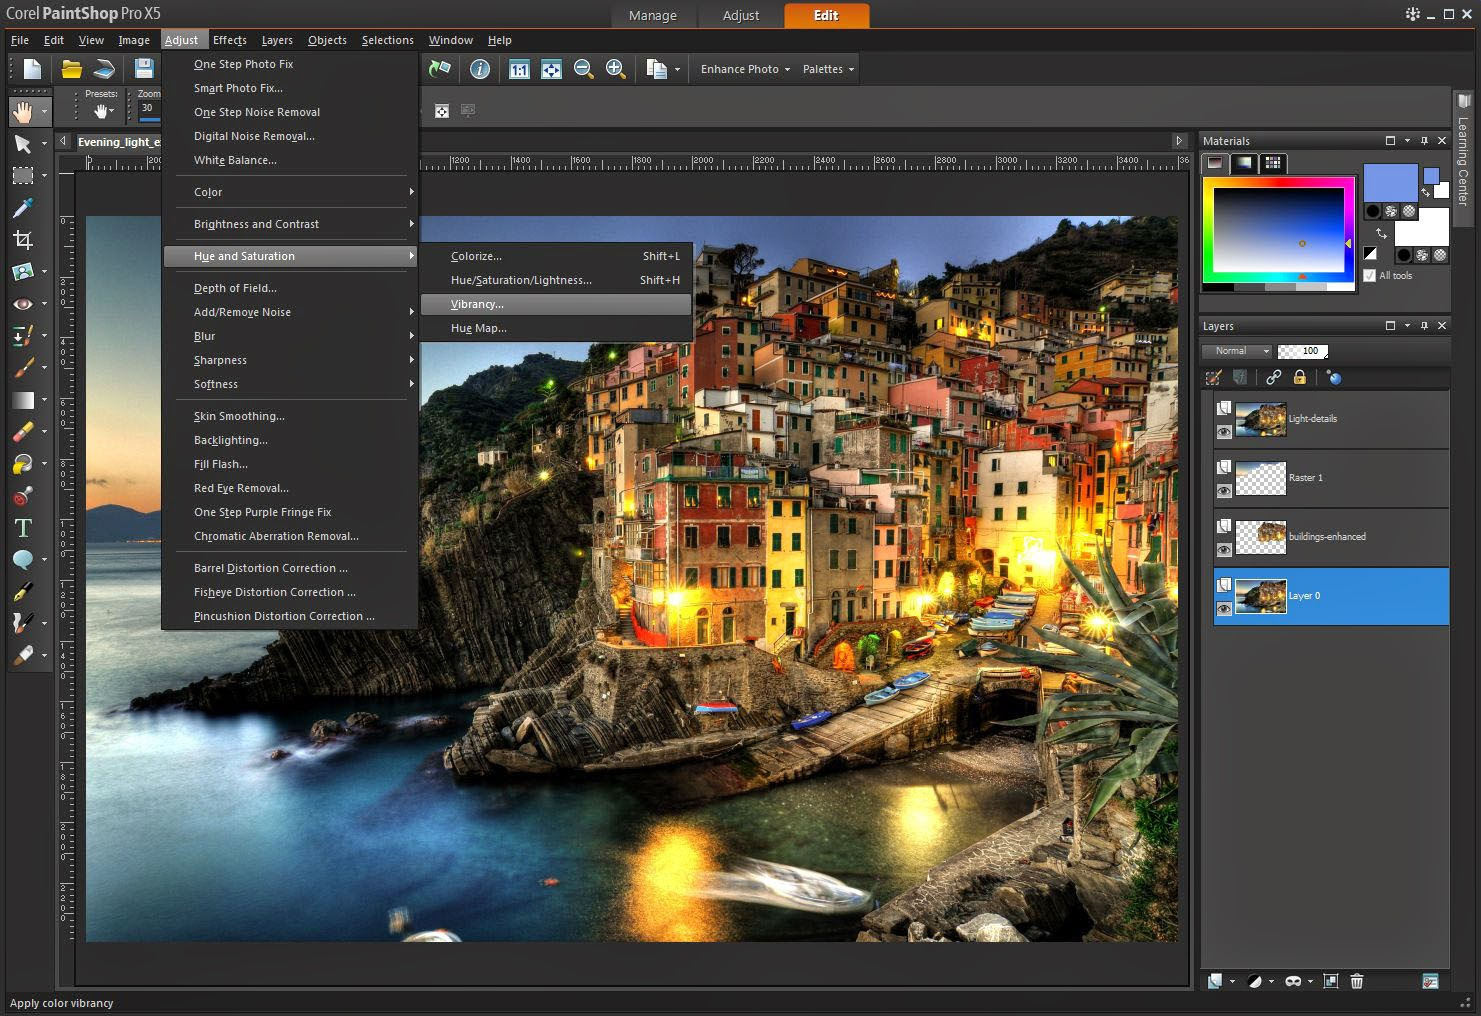 corel paintshop pro x7 ultimate full